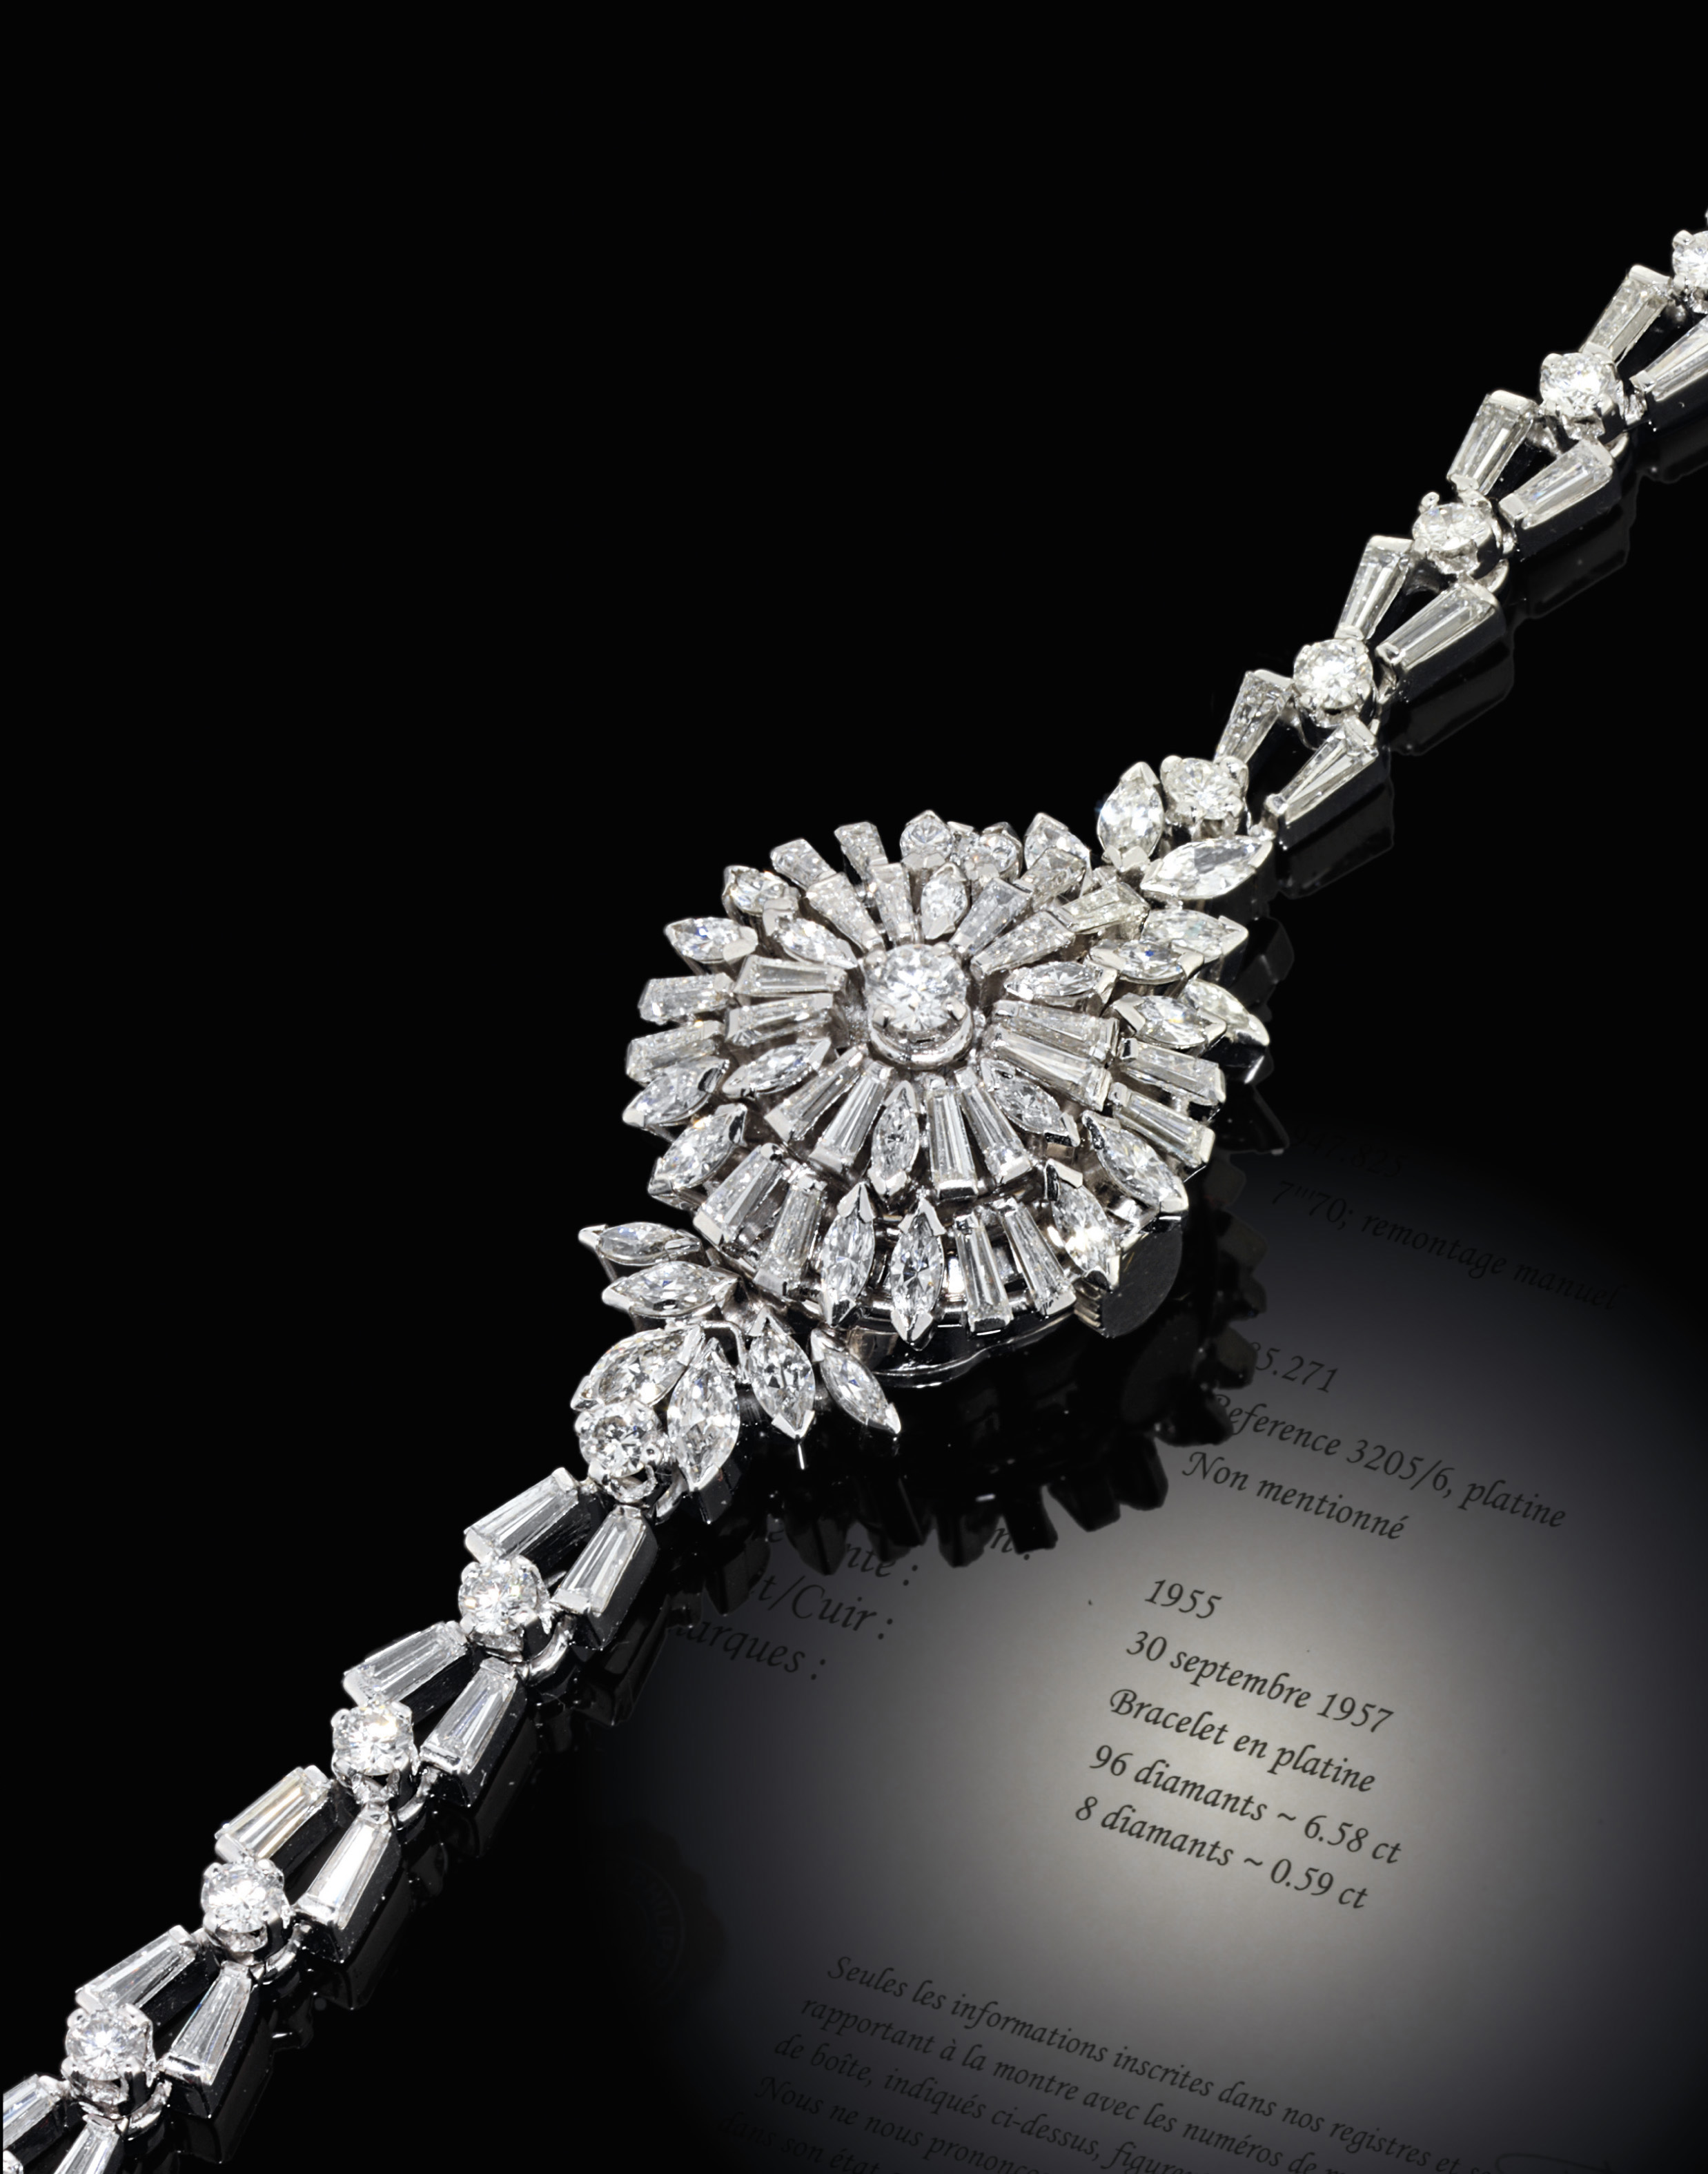 PATEK PHILIPPE. A LADY'S EXTRE